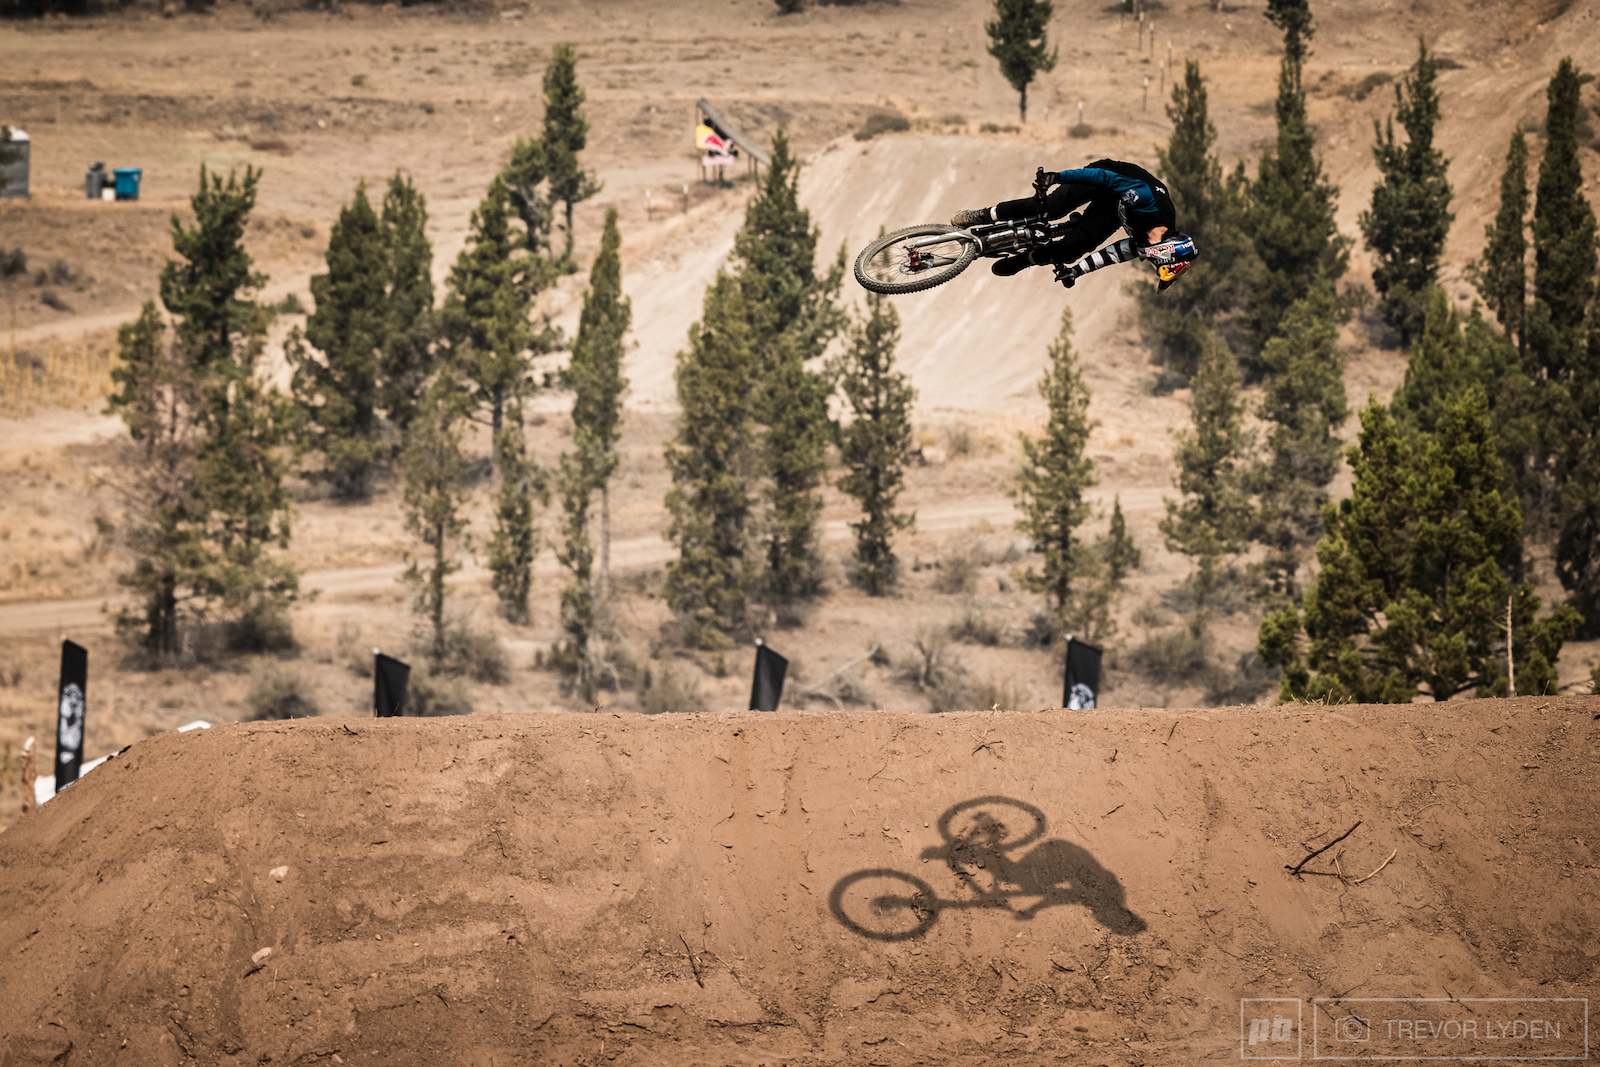 Carson s flat spin 360s are becoming a trademark for him.